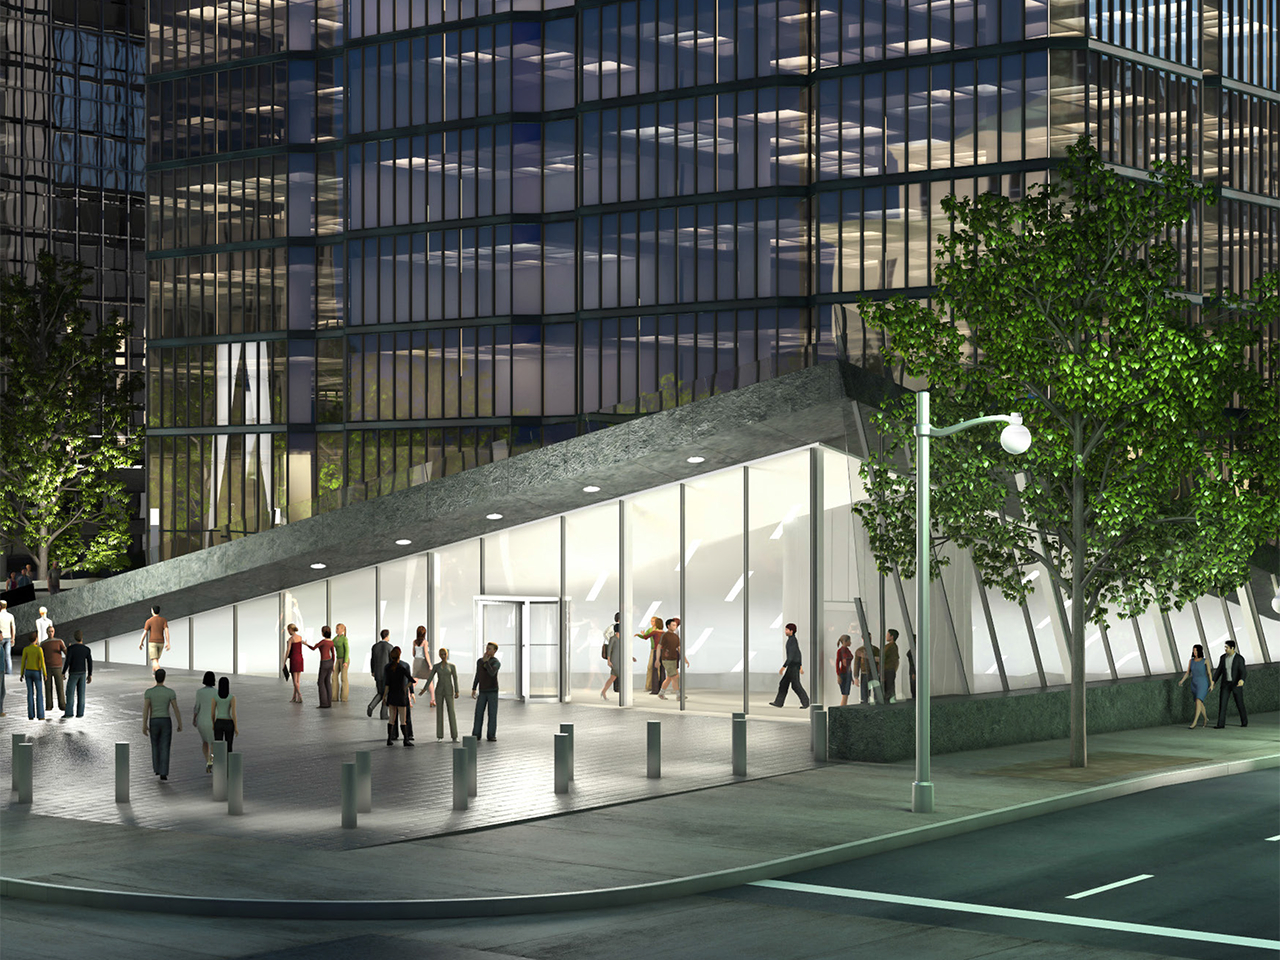 architectural rendering of the Bank of Canada Museum plaza and glass entranceway